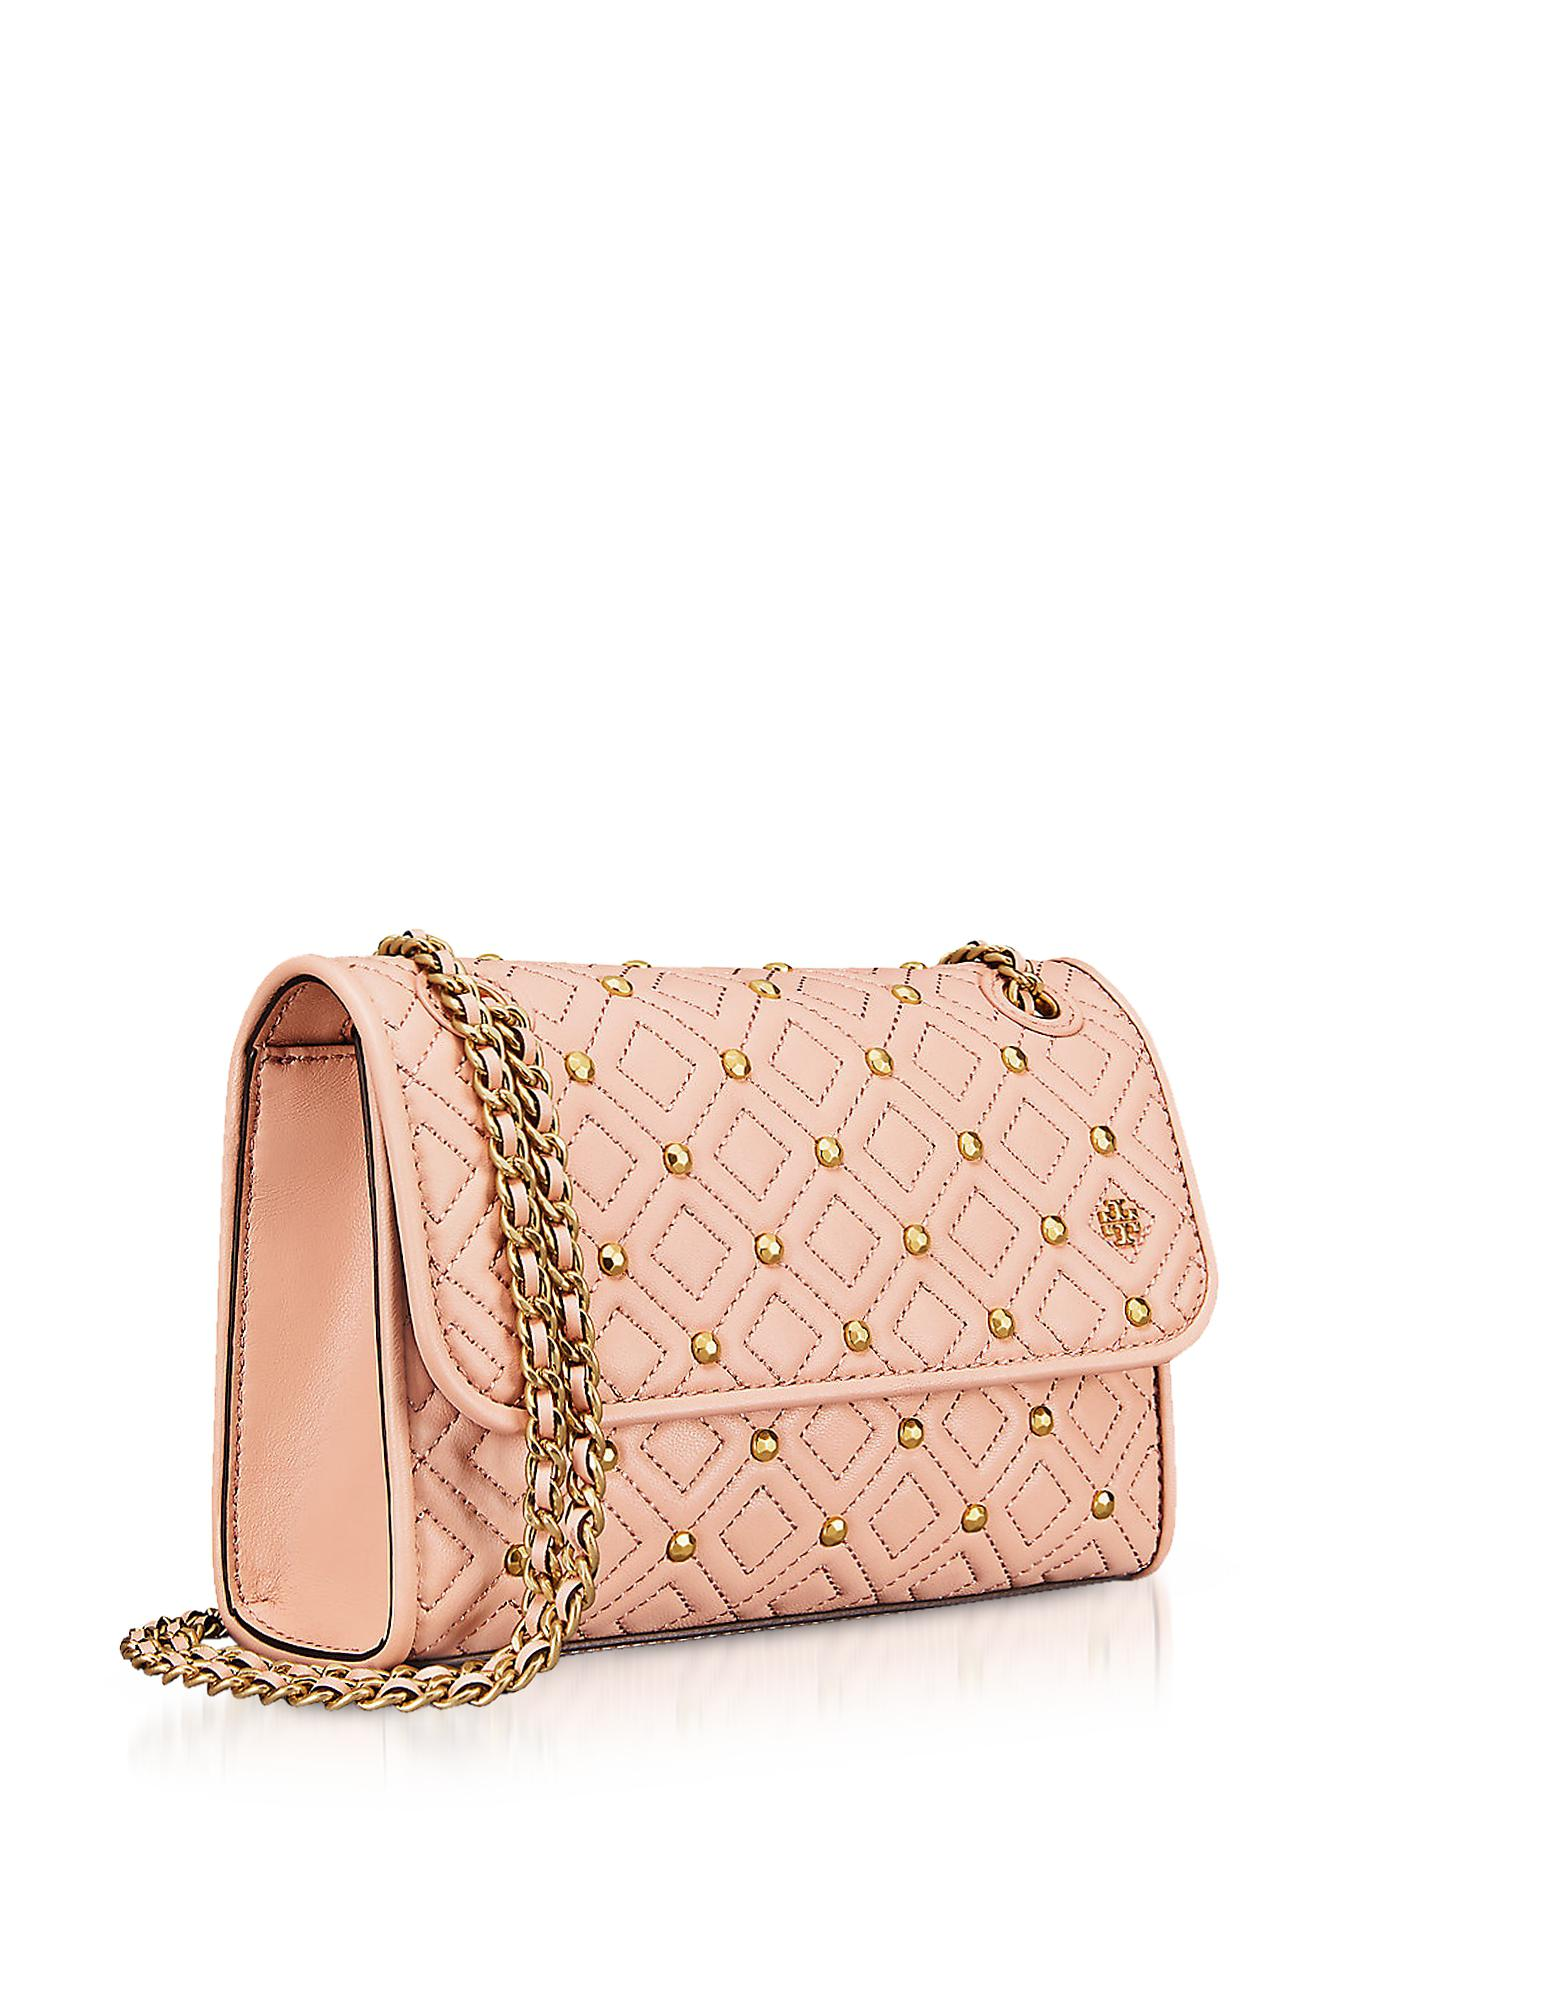 43ef6c93a6b9 Tory Burch Fleming Stud Quilted Leather Small Convertible Shoulder ...